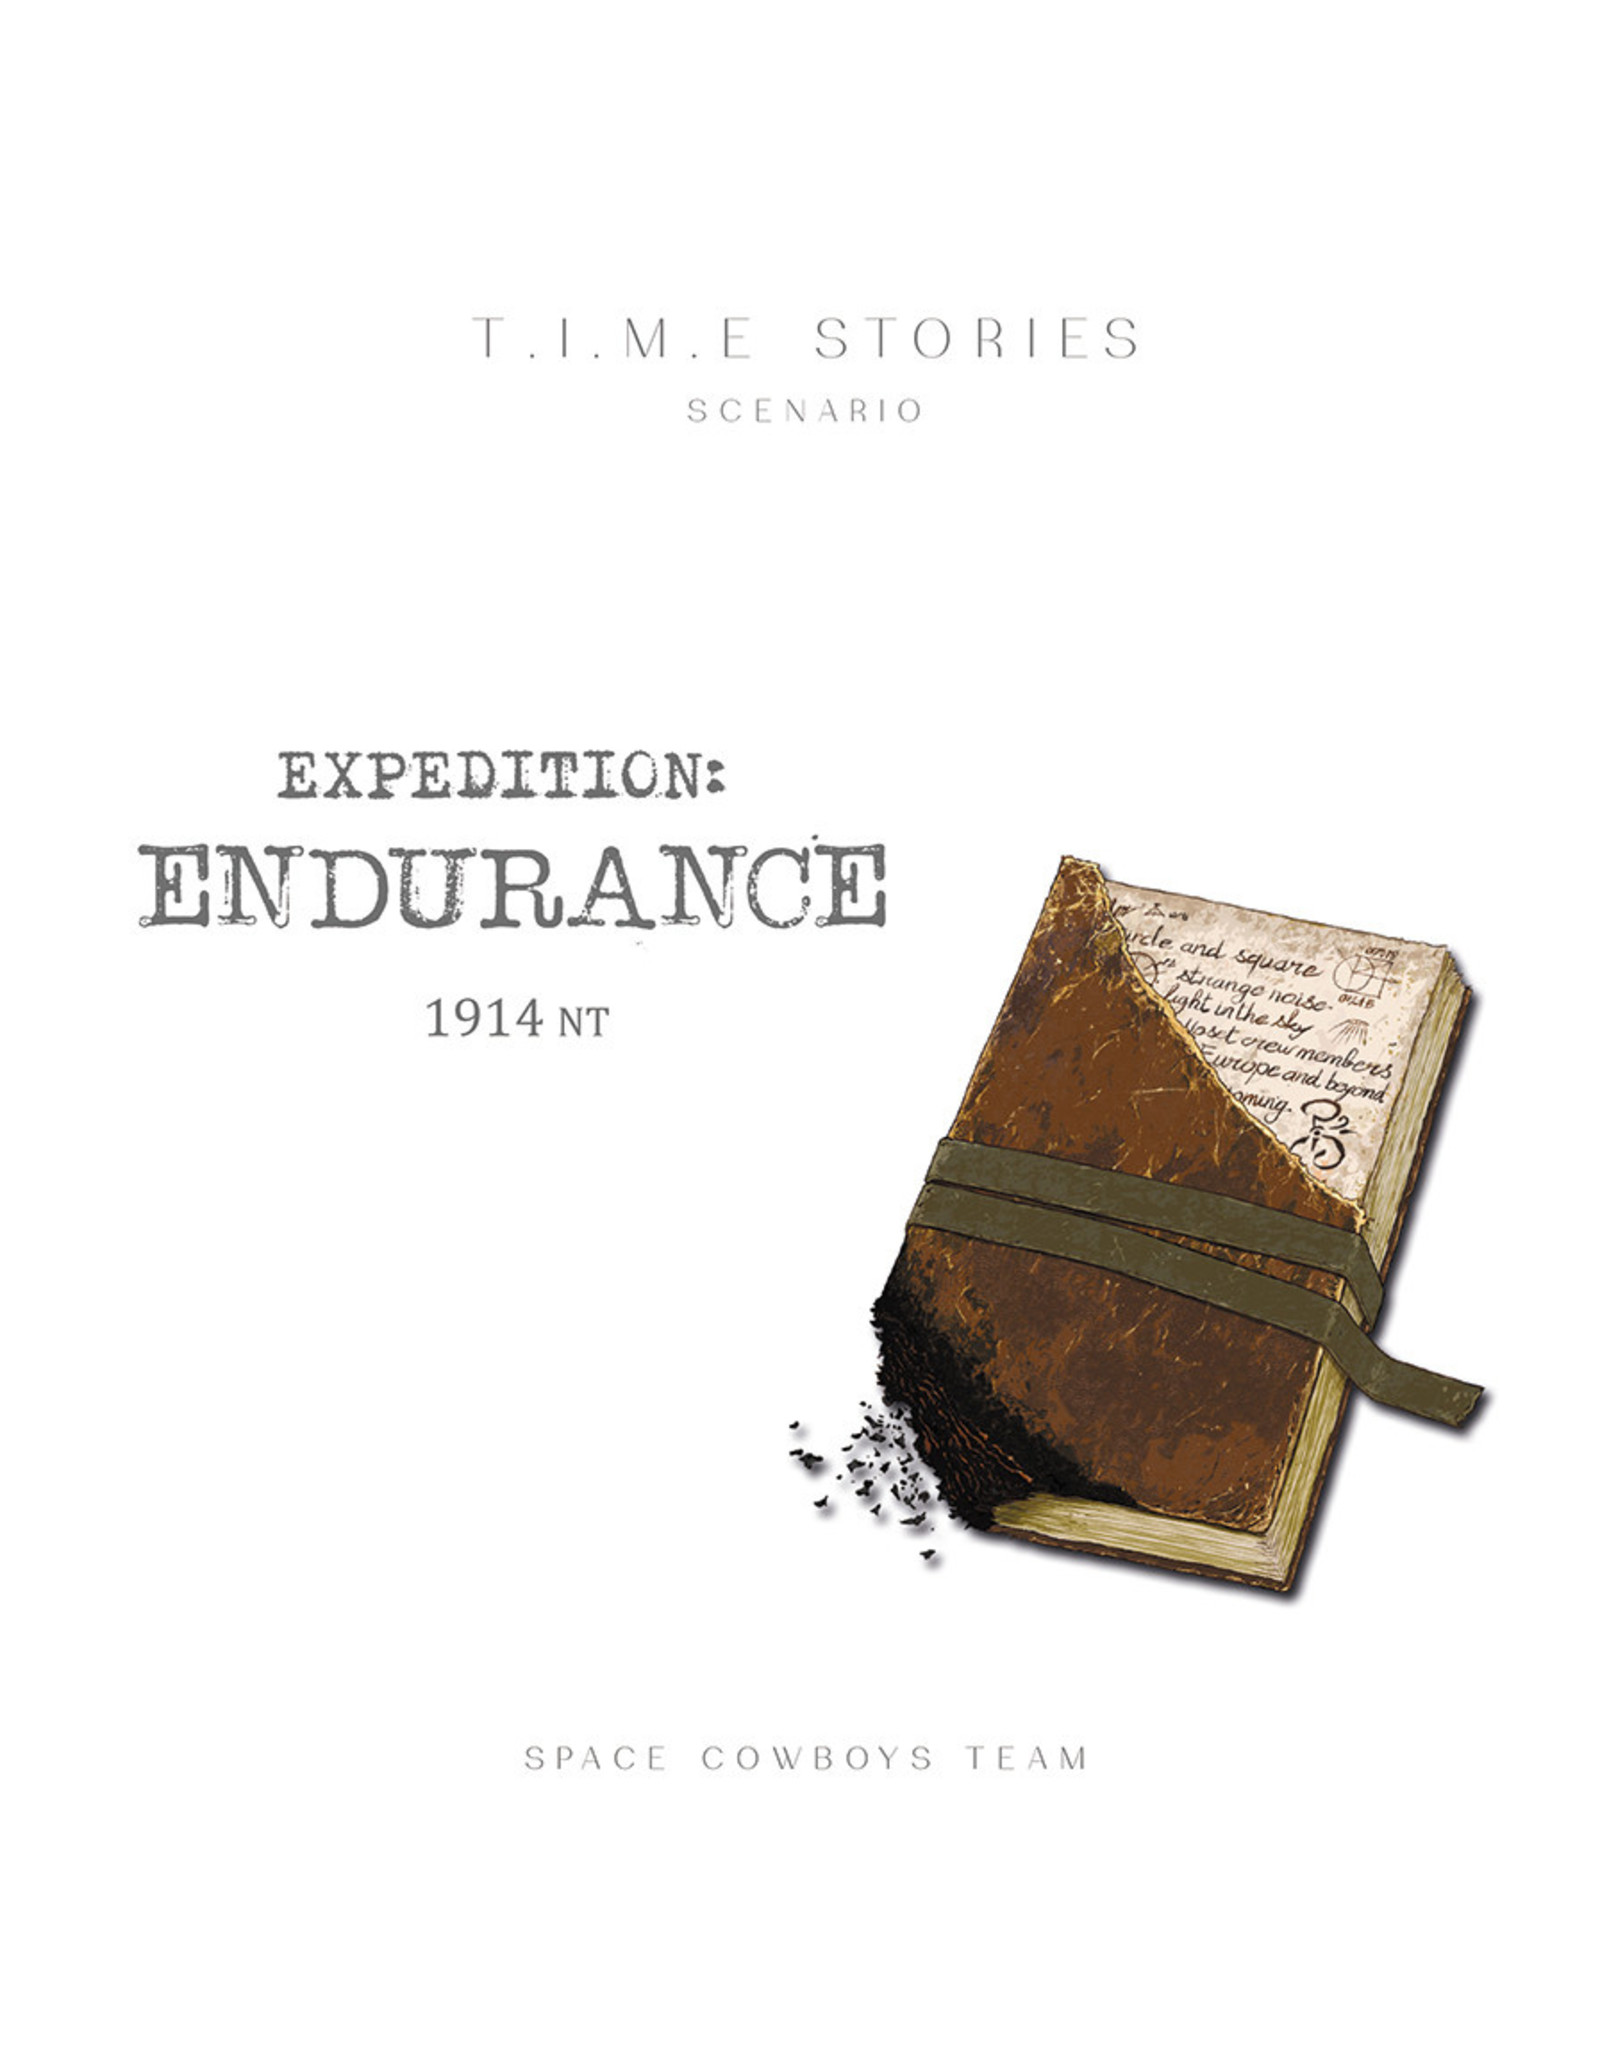 Space Cowboys TIME Stories Expedition Endurance Expansion